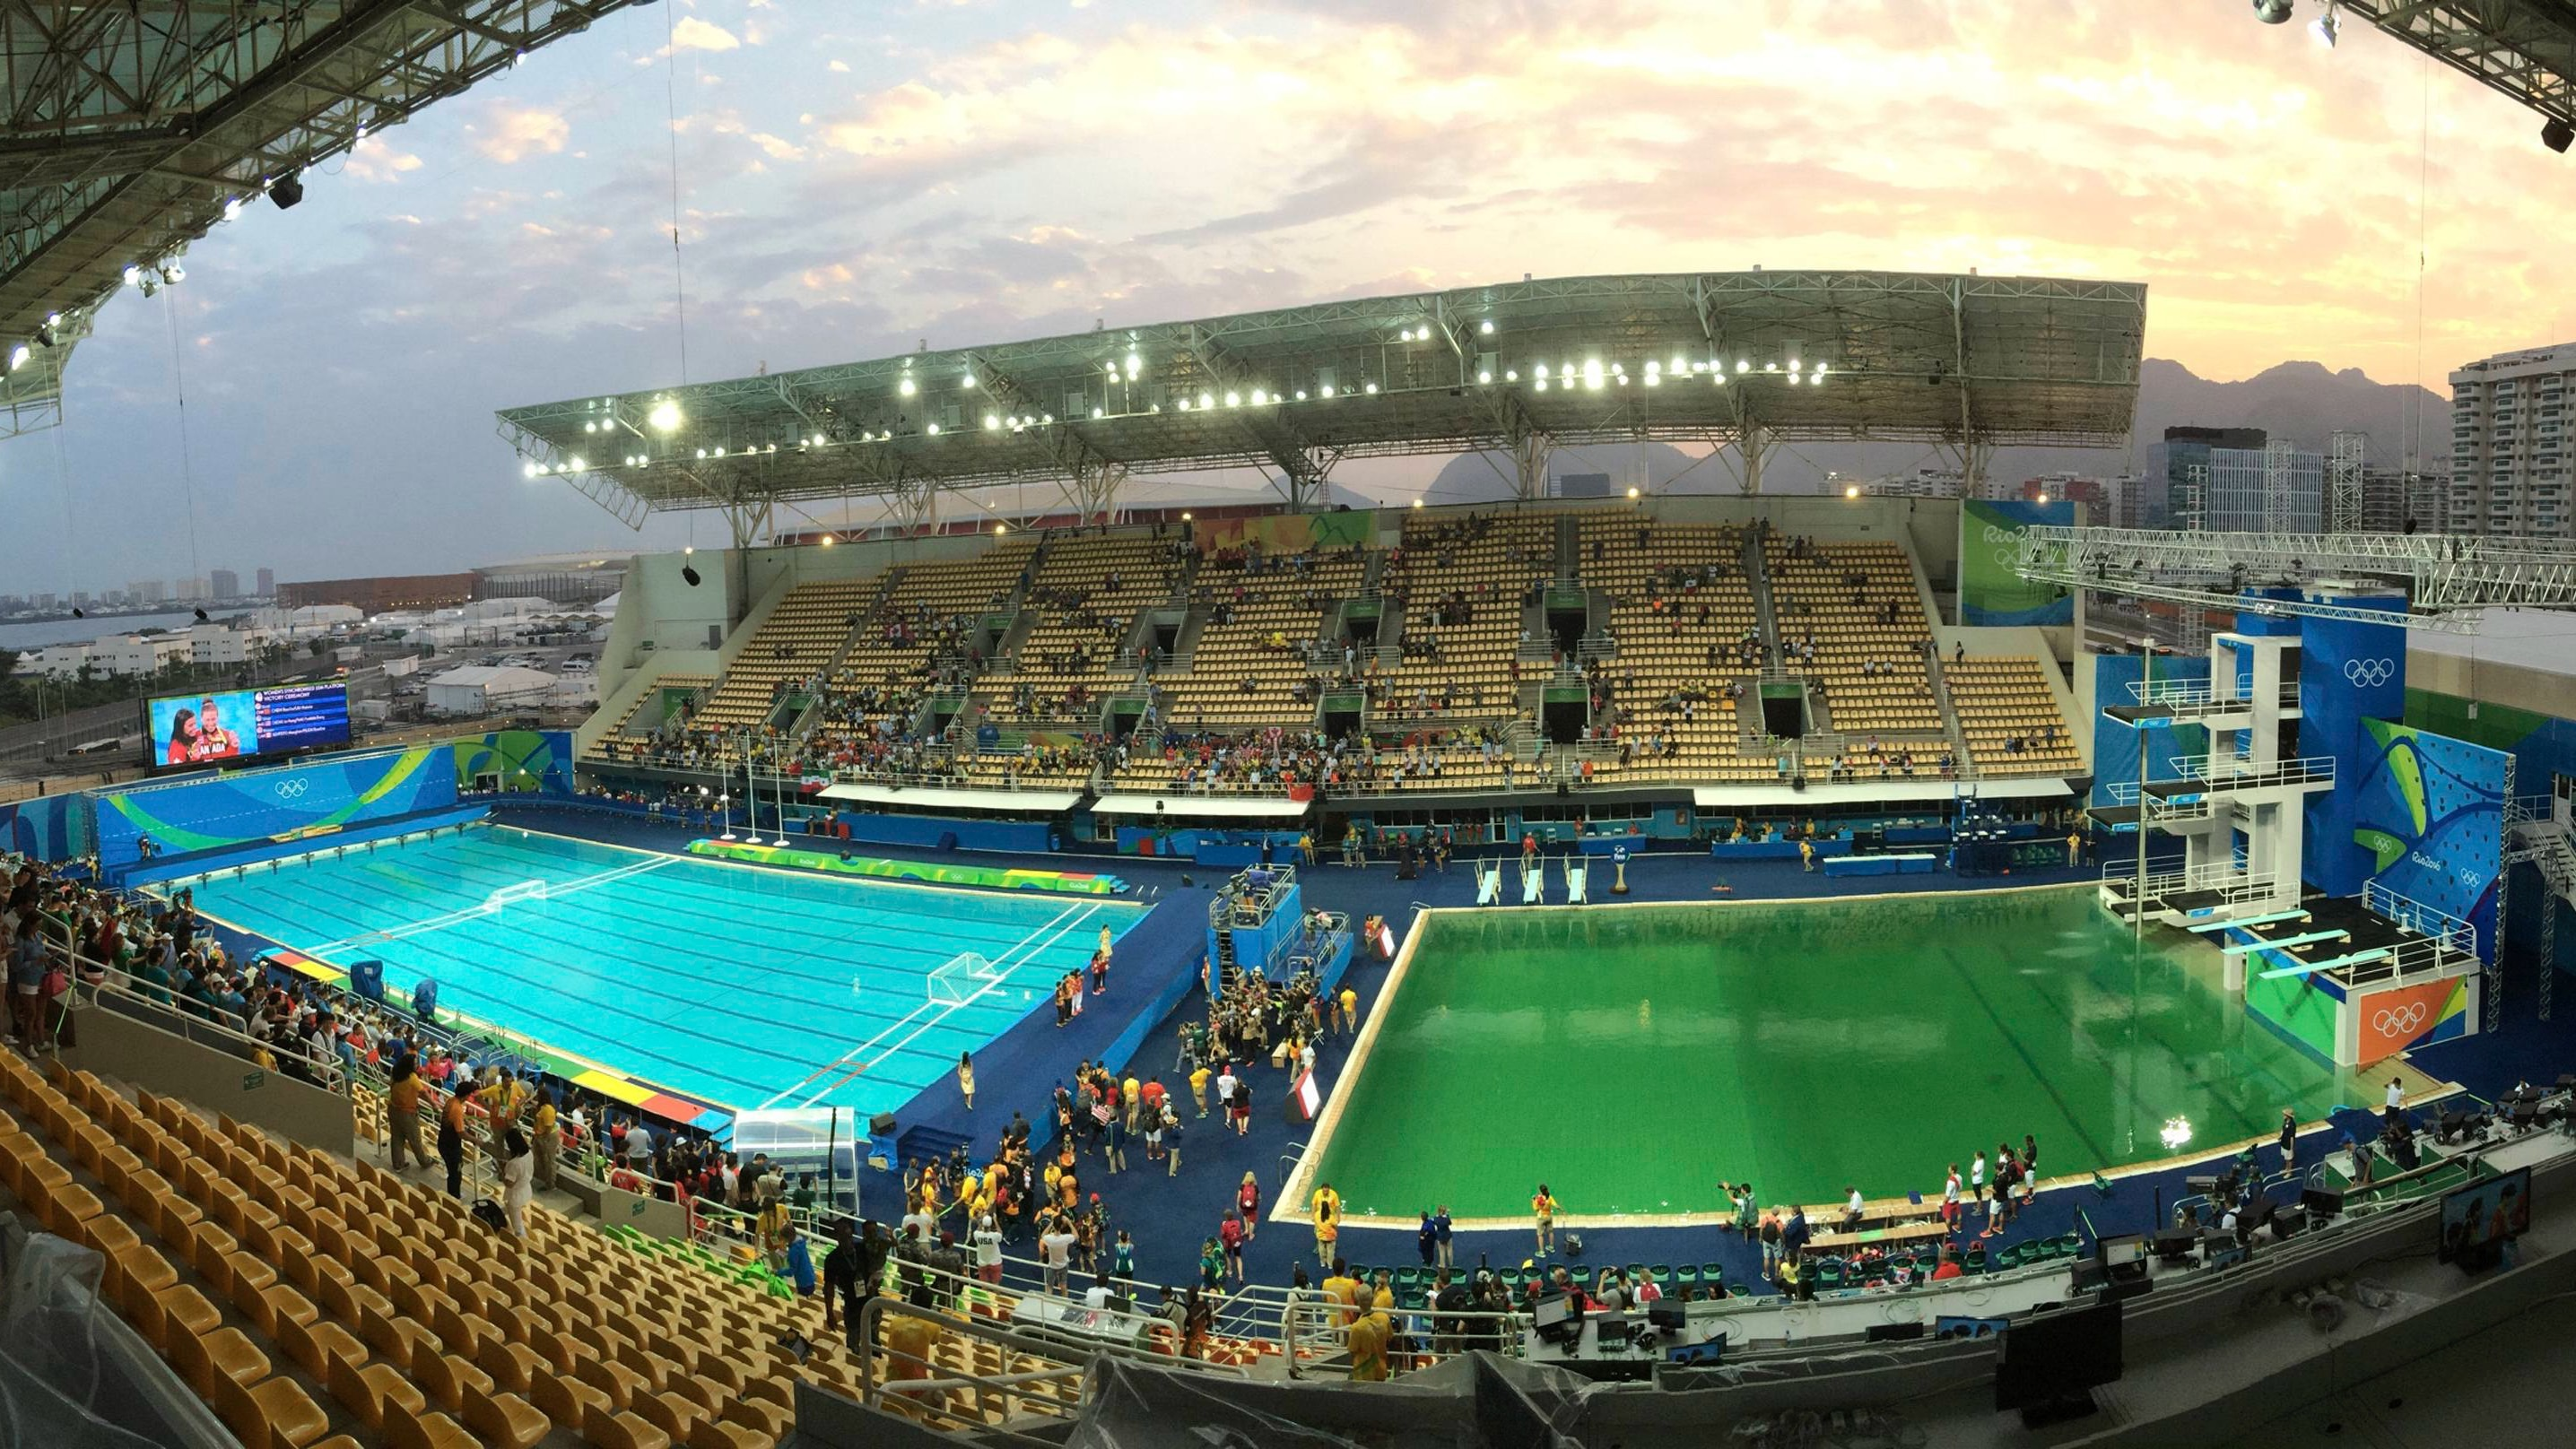 The Olympic diving pool, which turned green because of an algae bloom.